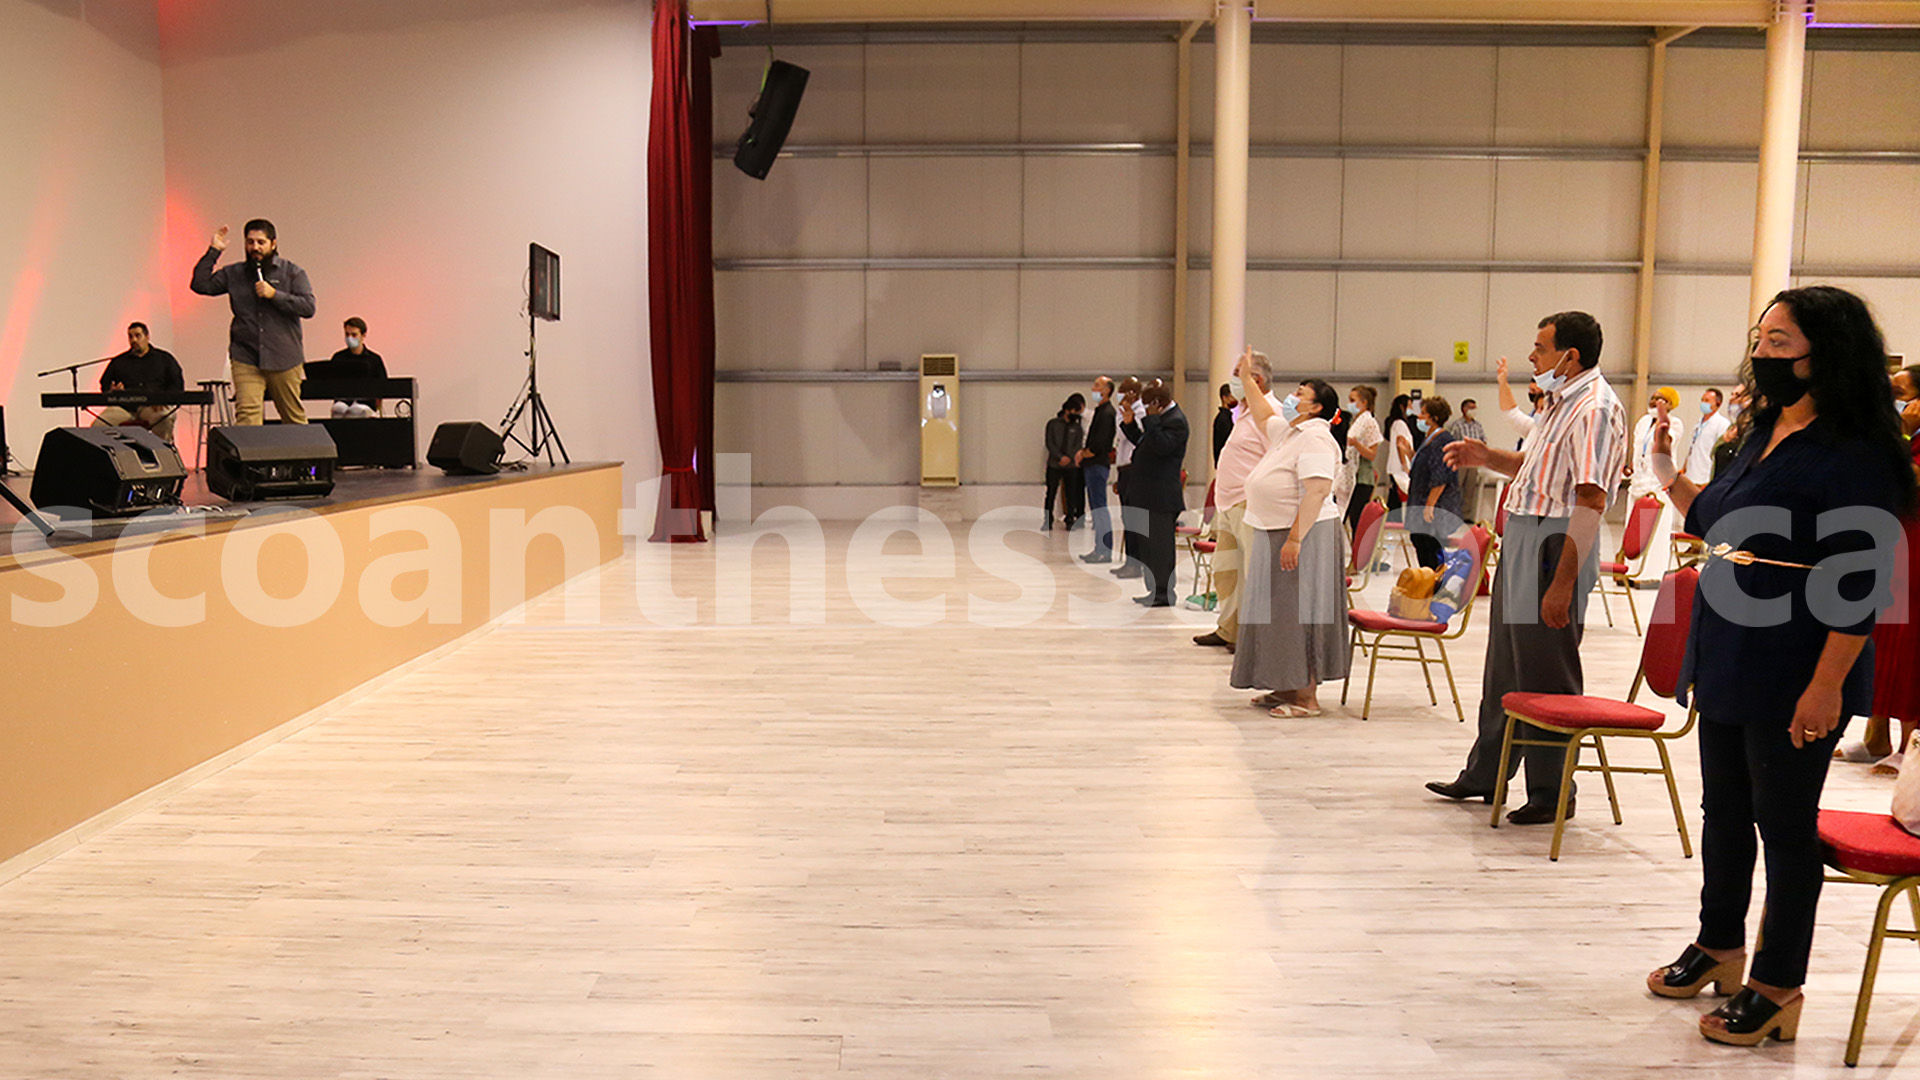 SCOAN_THESSALONICA_MASS_PRAYER_2020_09_06